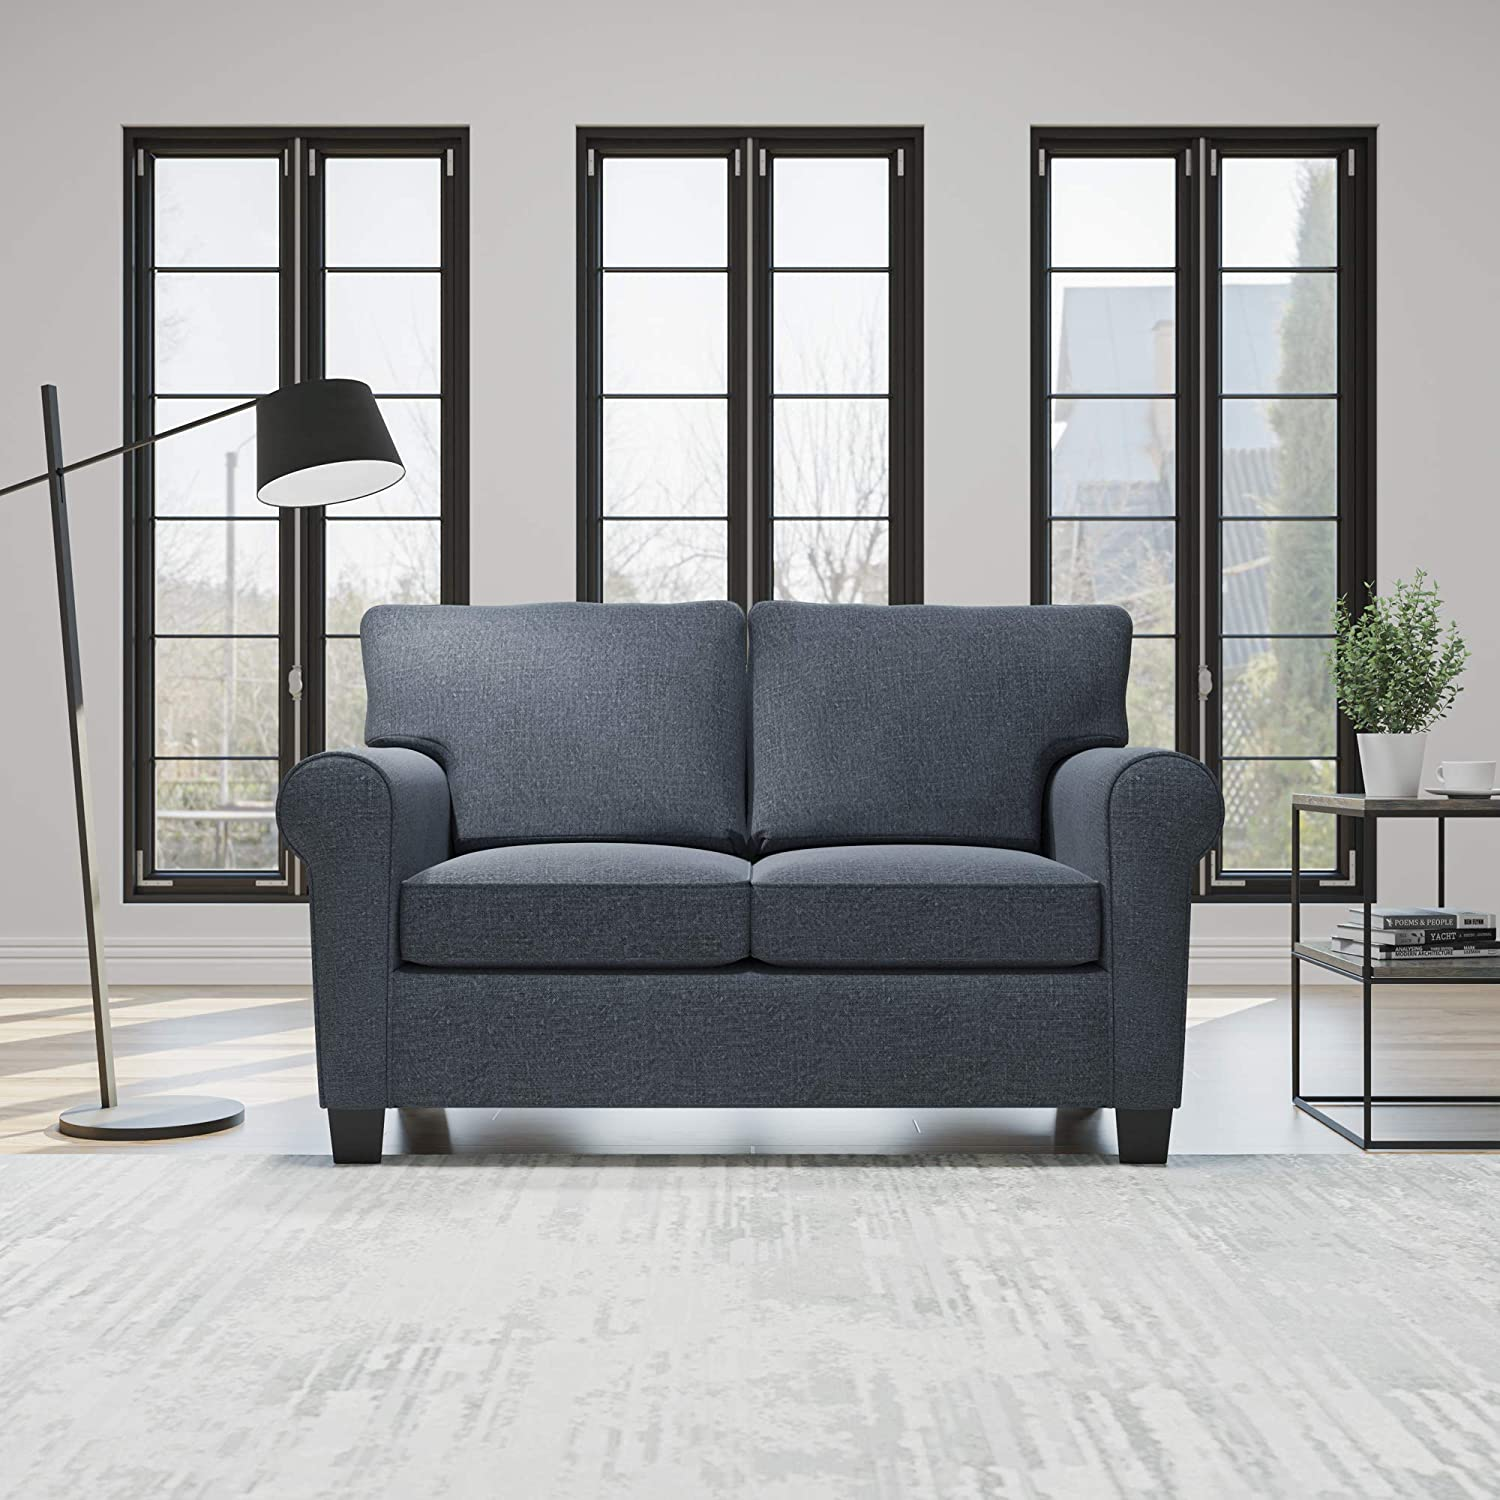 Edenbrook Willow Upholstered Sofa and Loveseat with Rolled Arms – Contemporary, Casual, Cozy, and Comfortable Love Seats, Midnight Navy